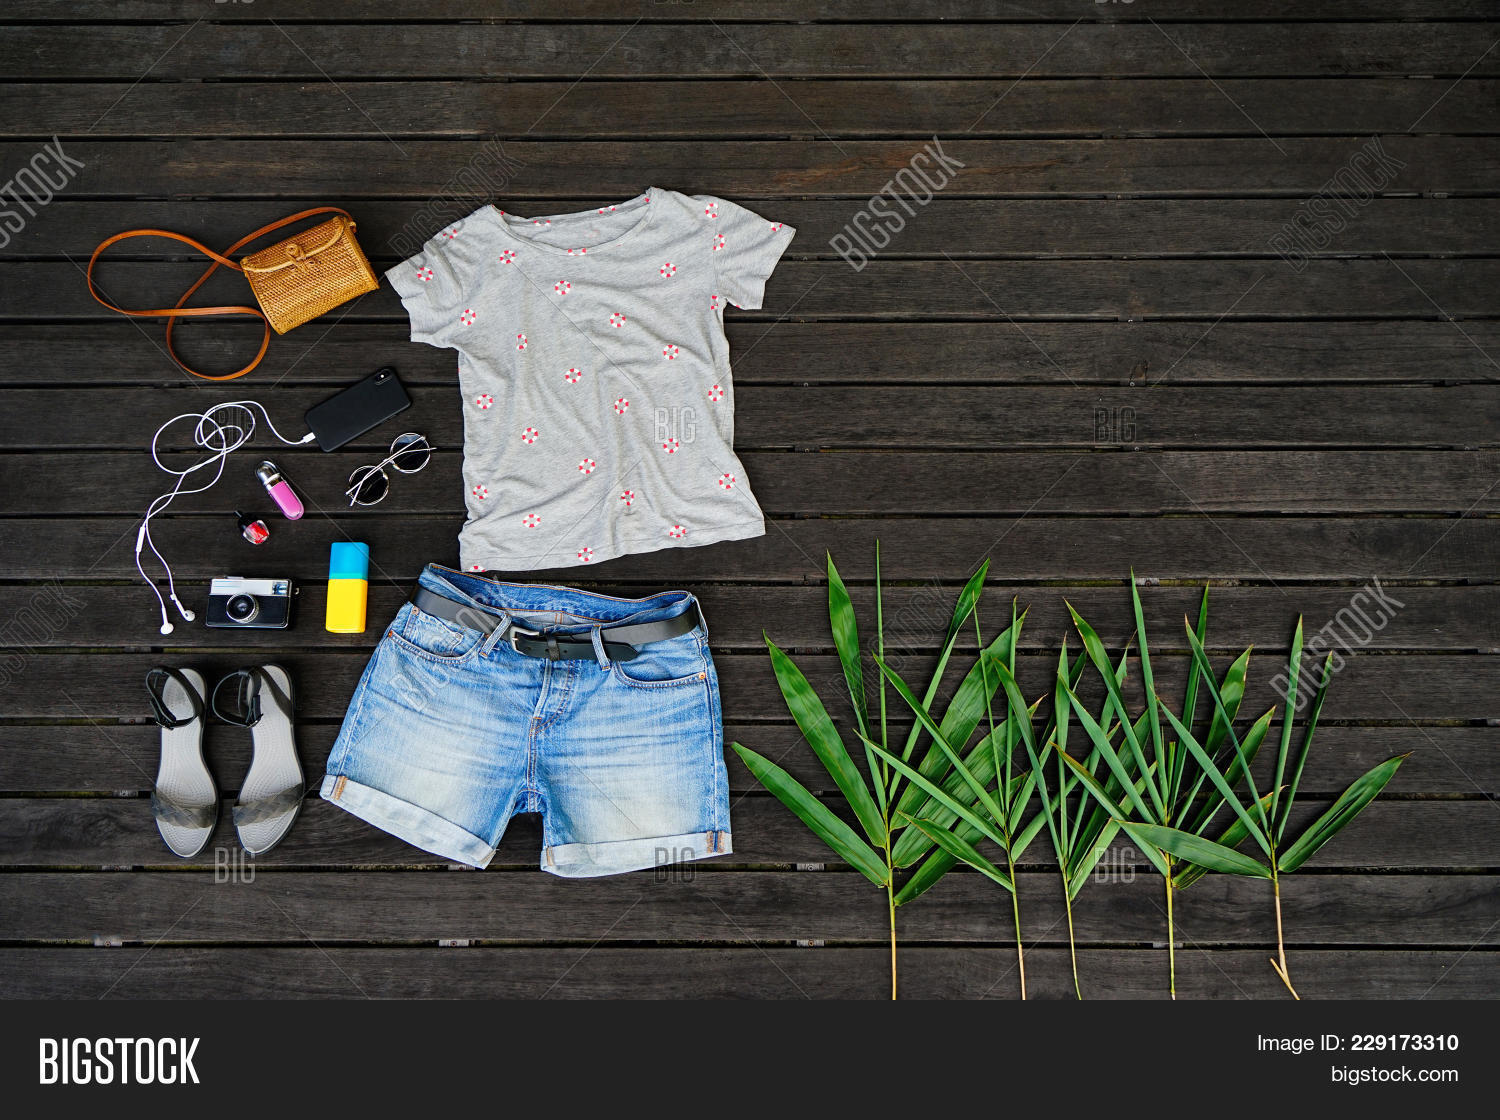 3381102c7f85 Woman summer clothes collage flat lay isolated on dark wood background.  Feminine desk top view fashion accessories: t-shirt, shorts, sandals,  sunglasses, ...